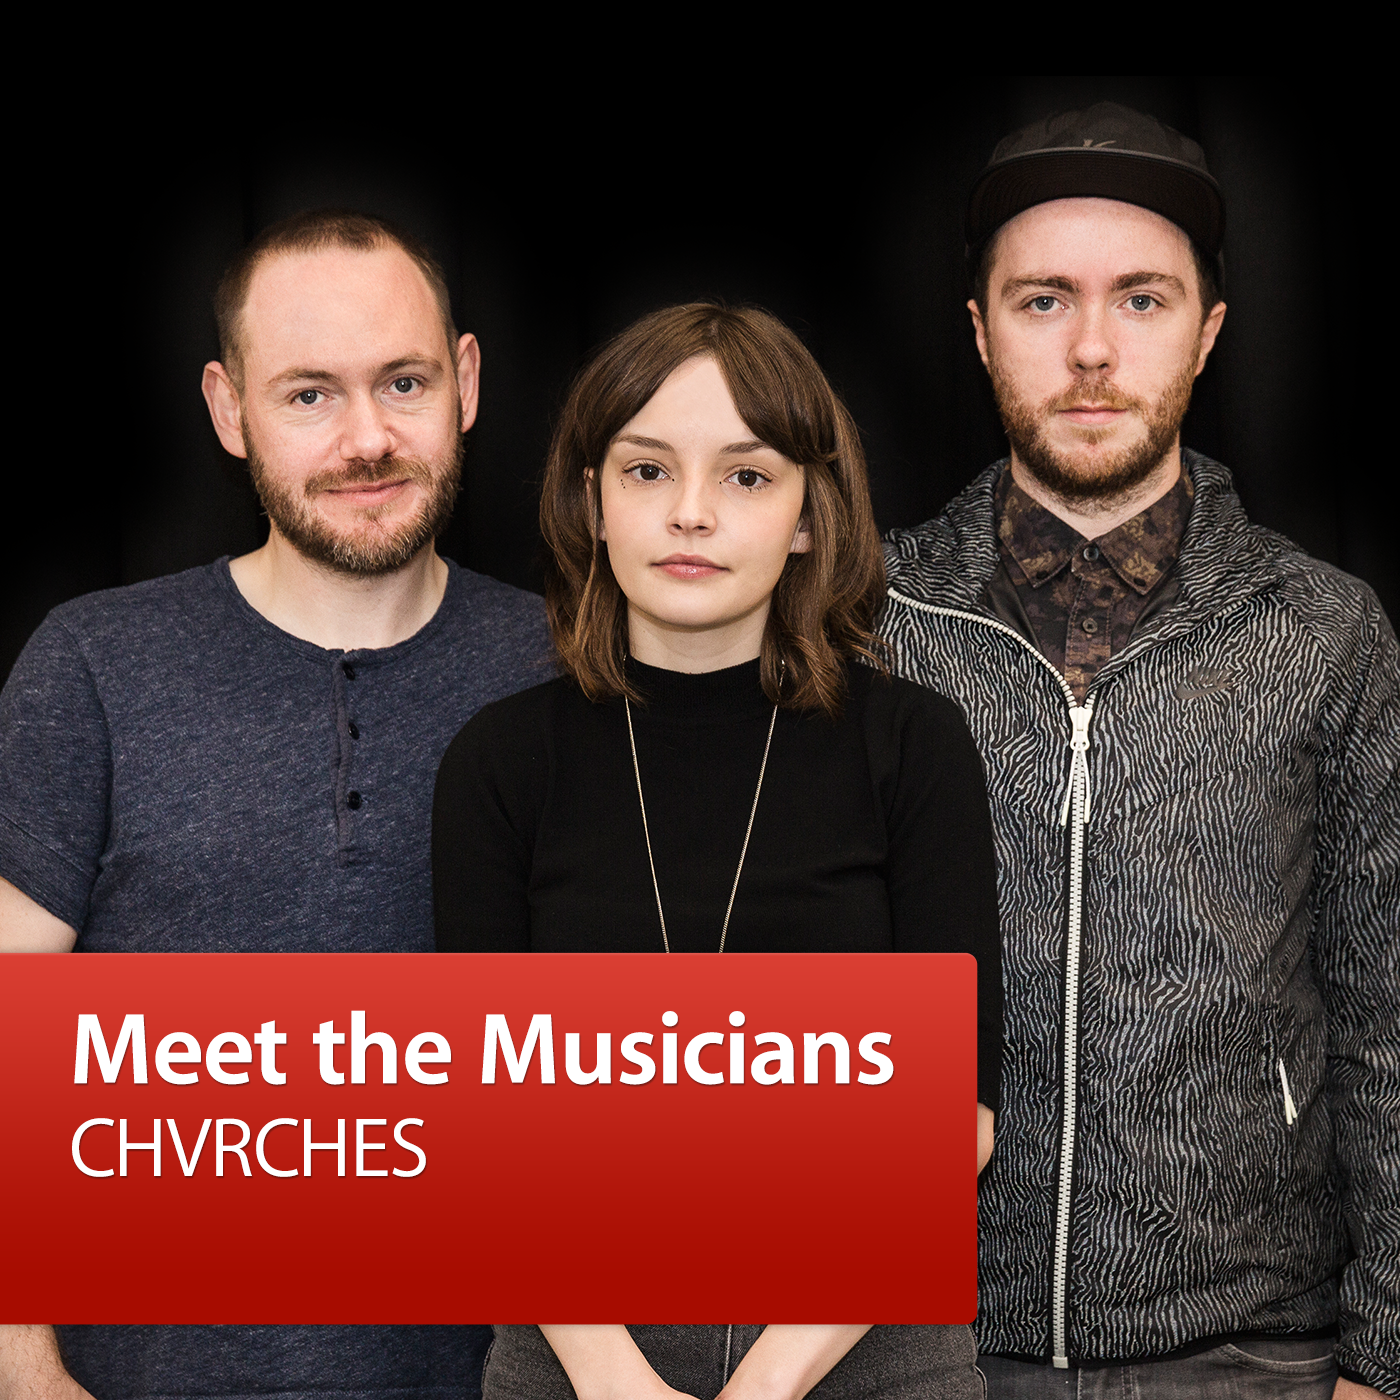 CHVRCHES: Meet the Musician